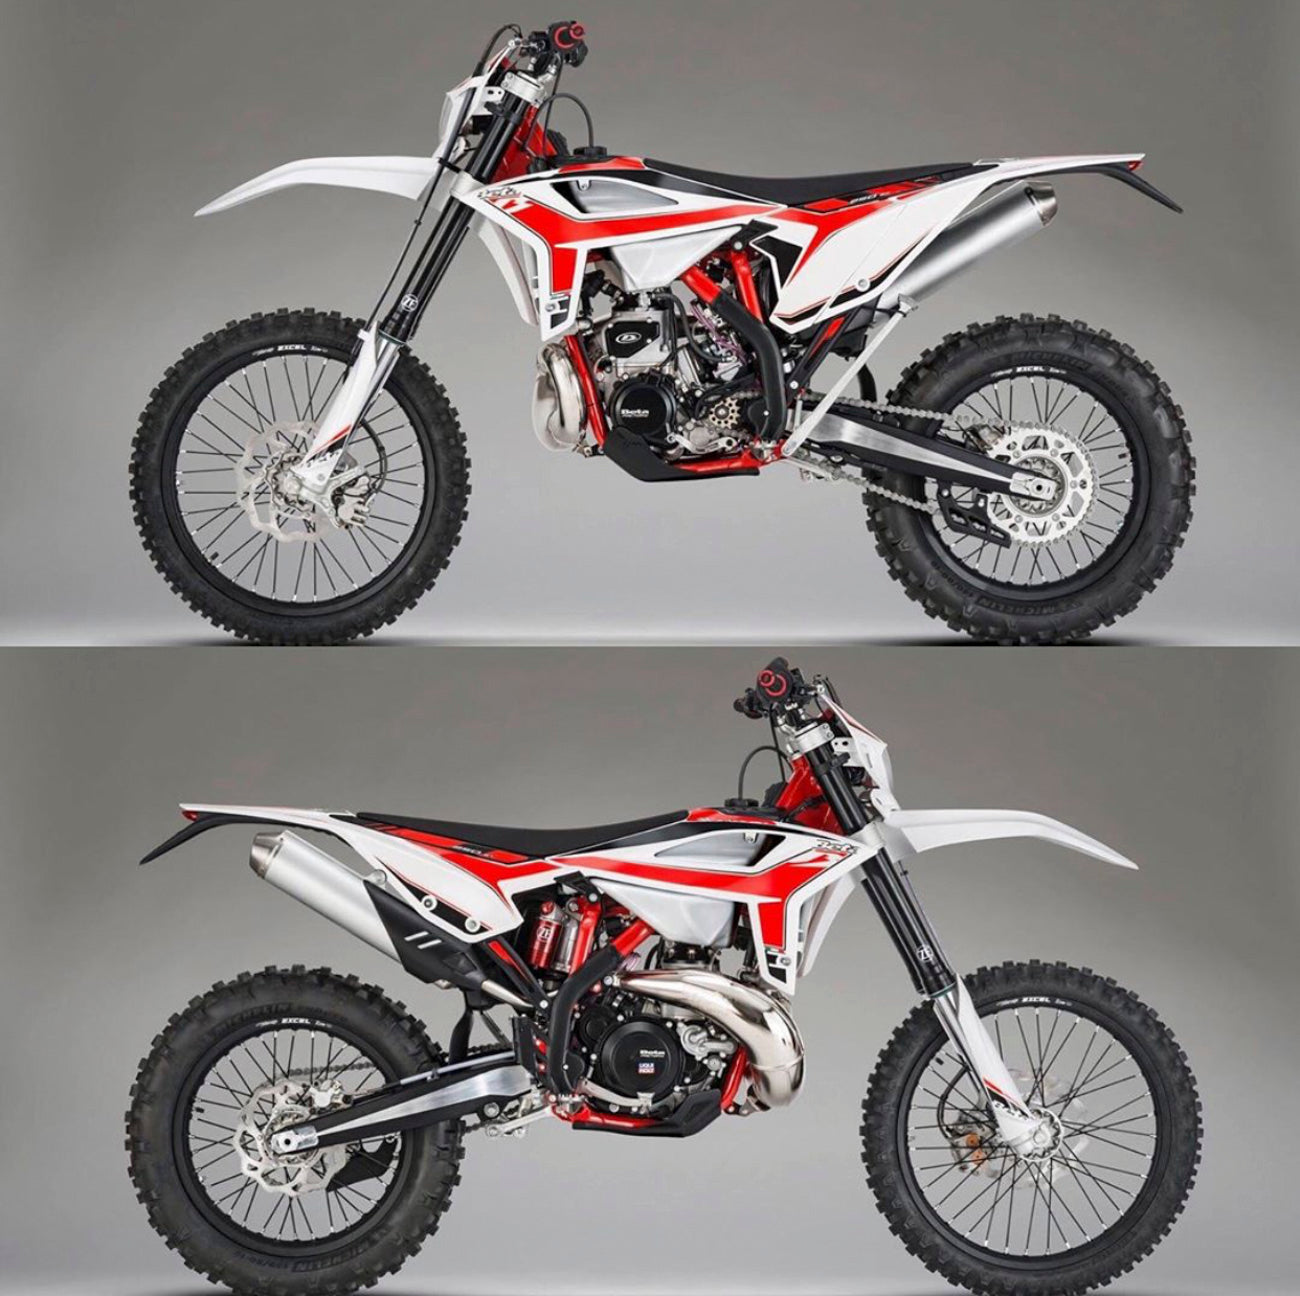 New 2020 Beta 250/300 rr release: 2 stroke counterbalance with a carb! But where the heck is the kickstart?